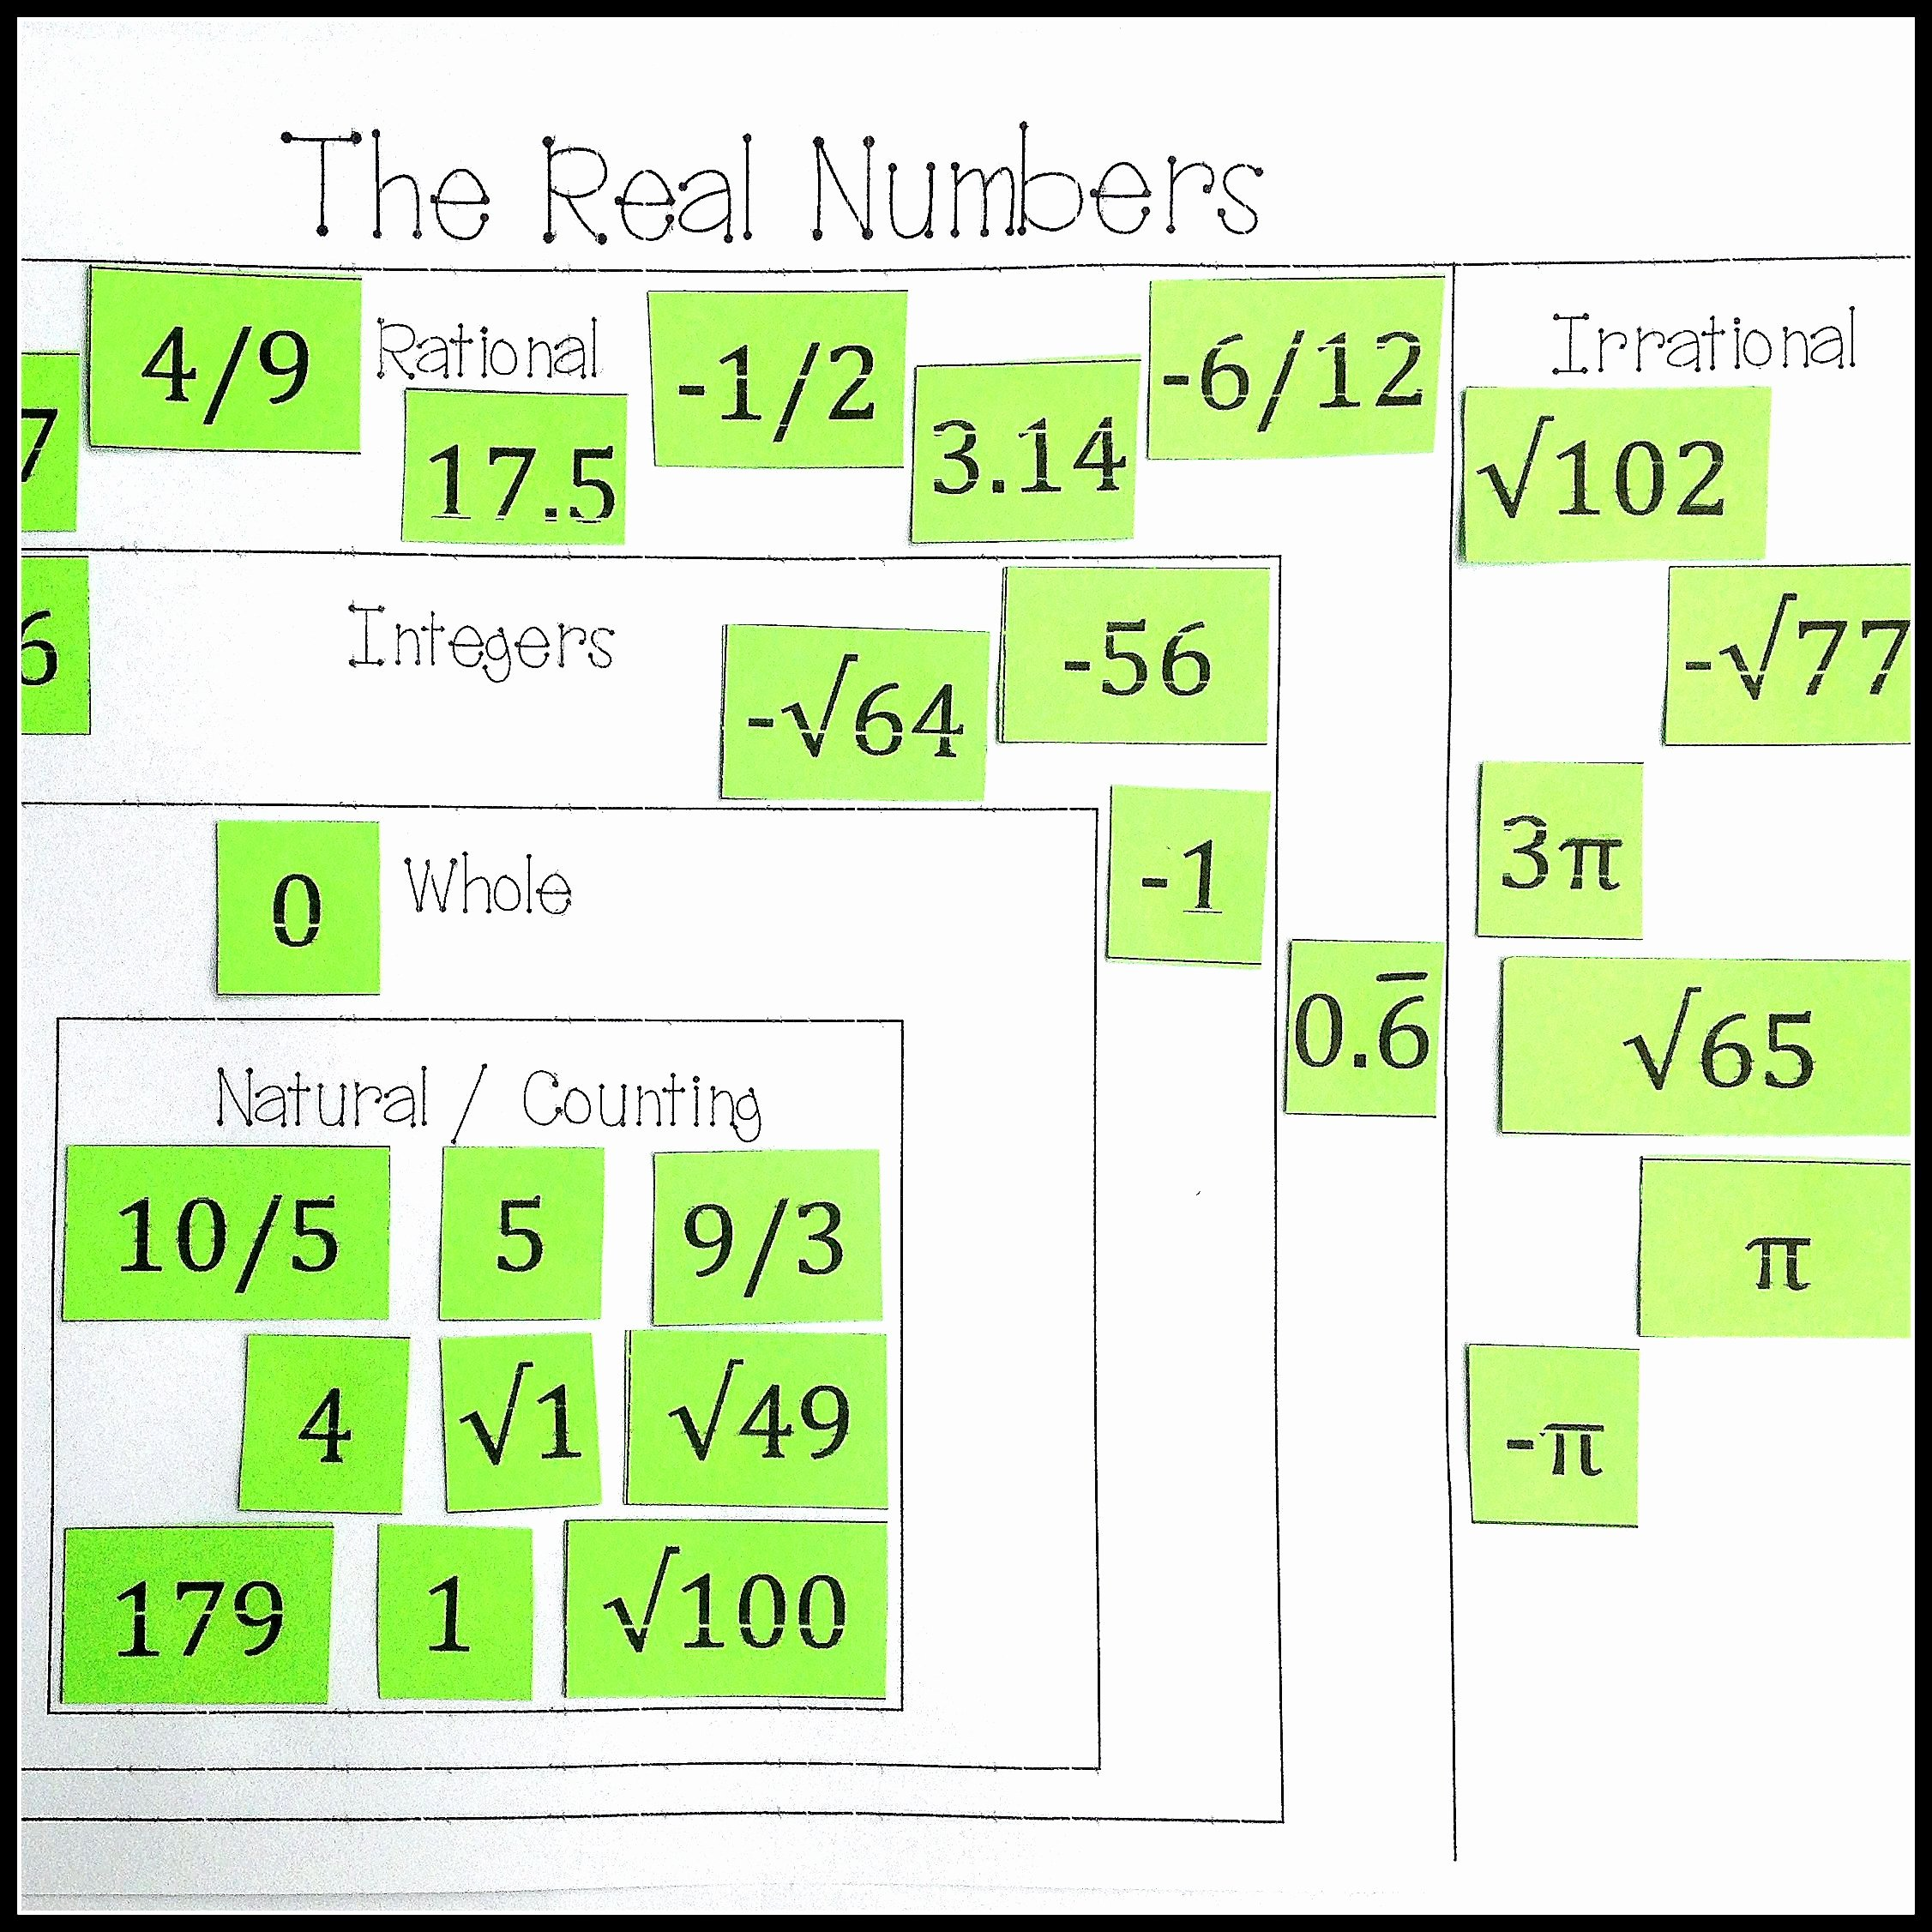 Classifying Real Numbers Worksheet Luxury Worksheet Classifying Real Numbers Worksheet Grass Fedjp